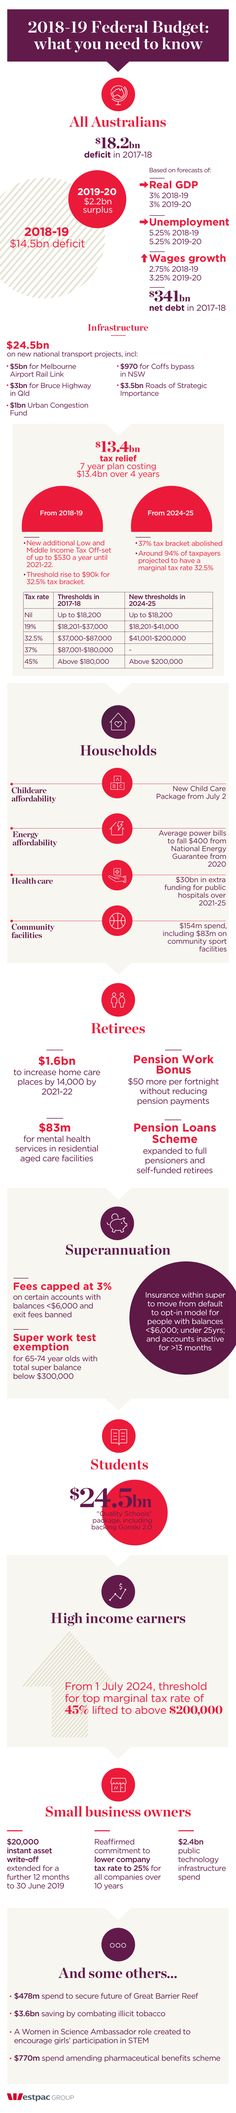 Westpac infographic: 2018 budget what you need to know